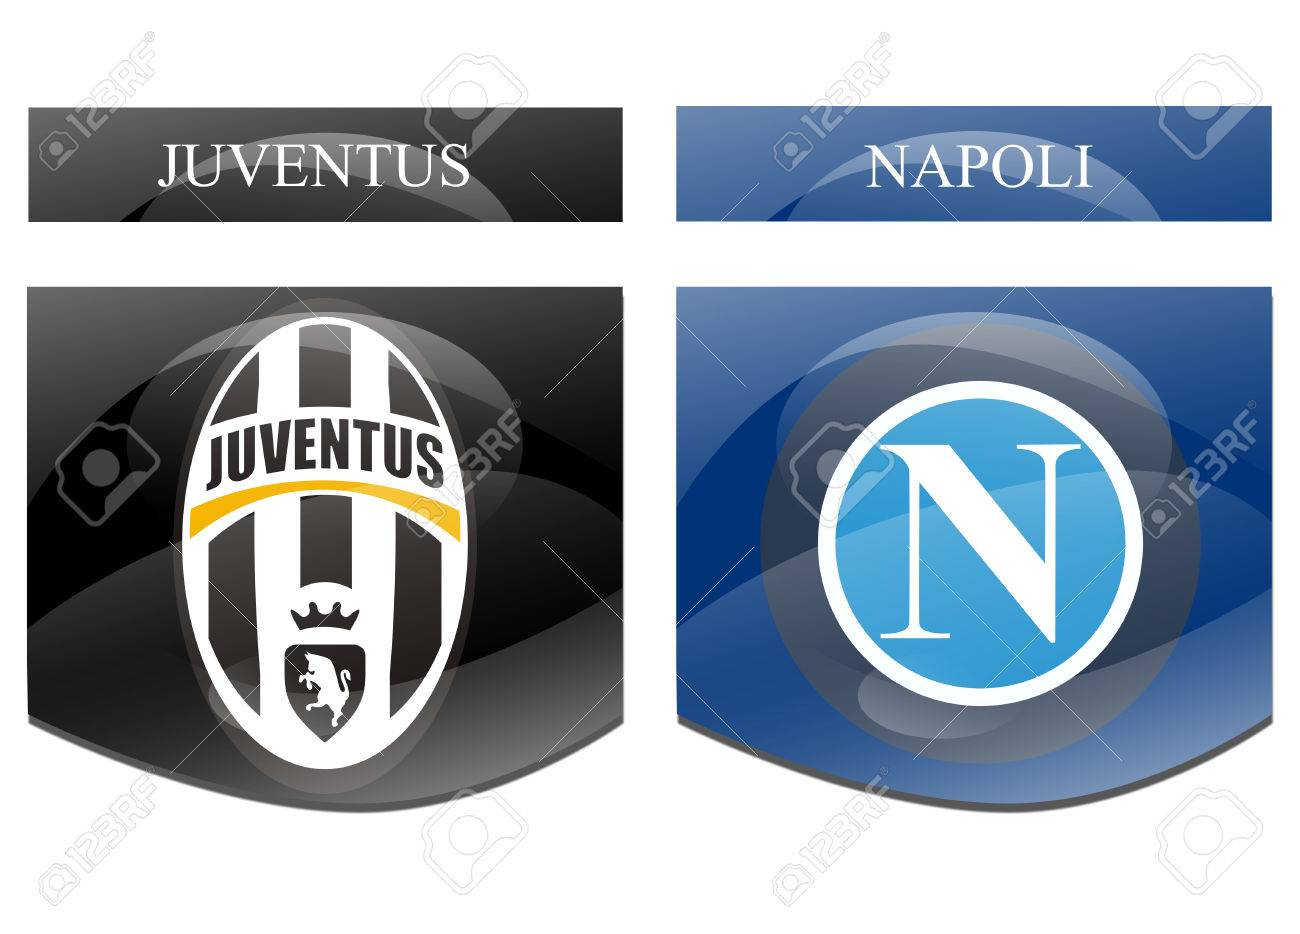 Juventus Vs Napoli Stock Photo, Picture And Royalty Free Image. Image  31610046.